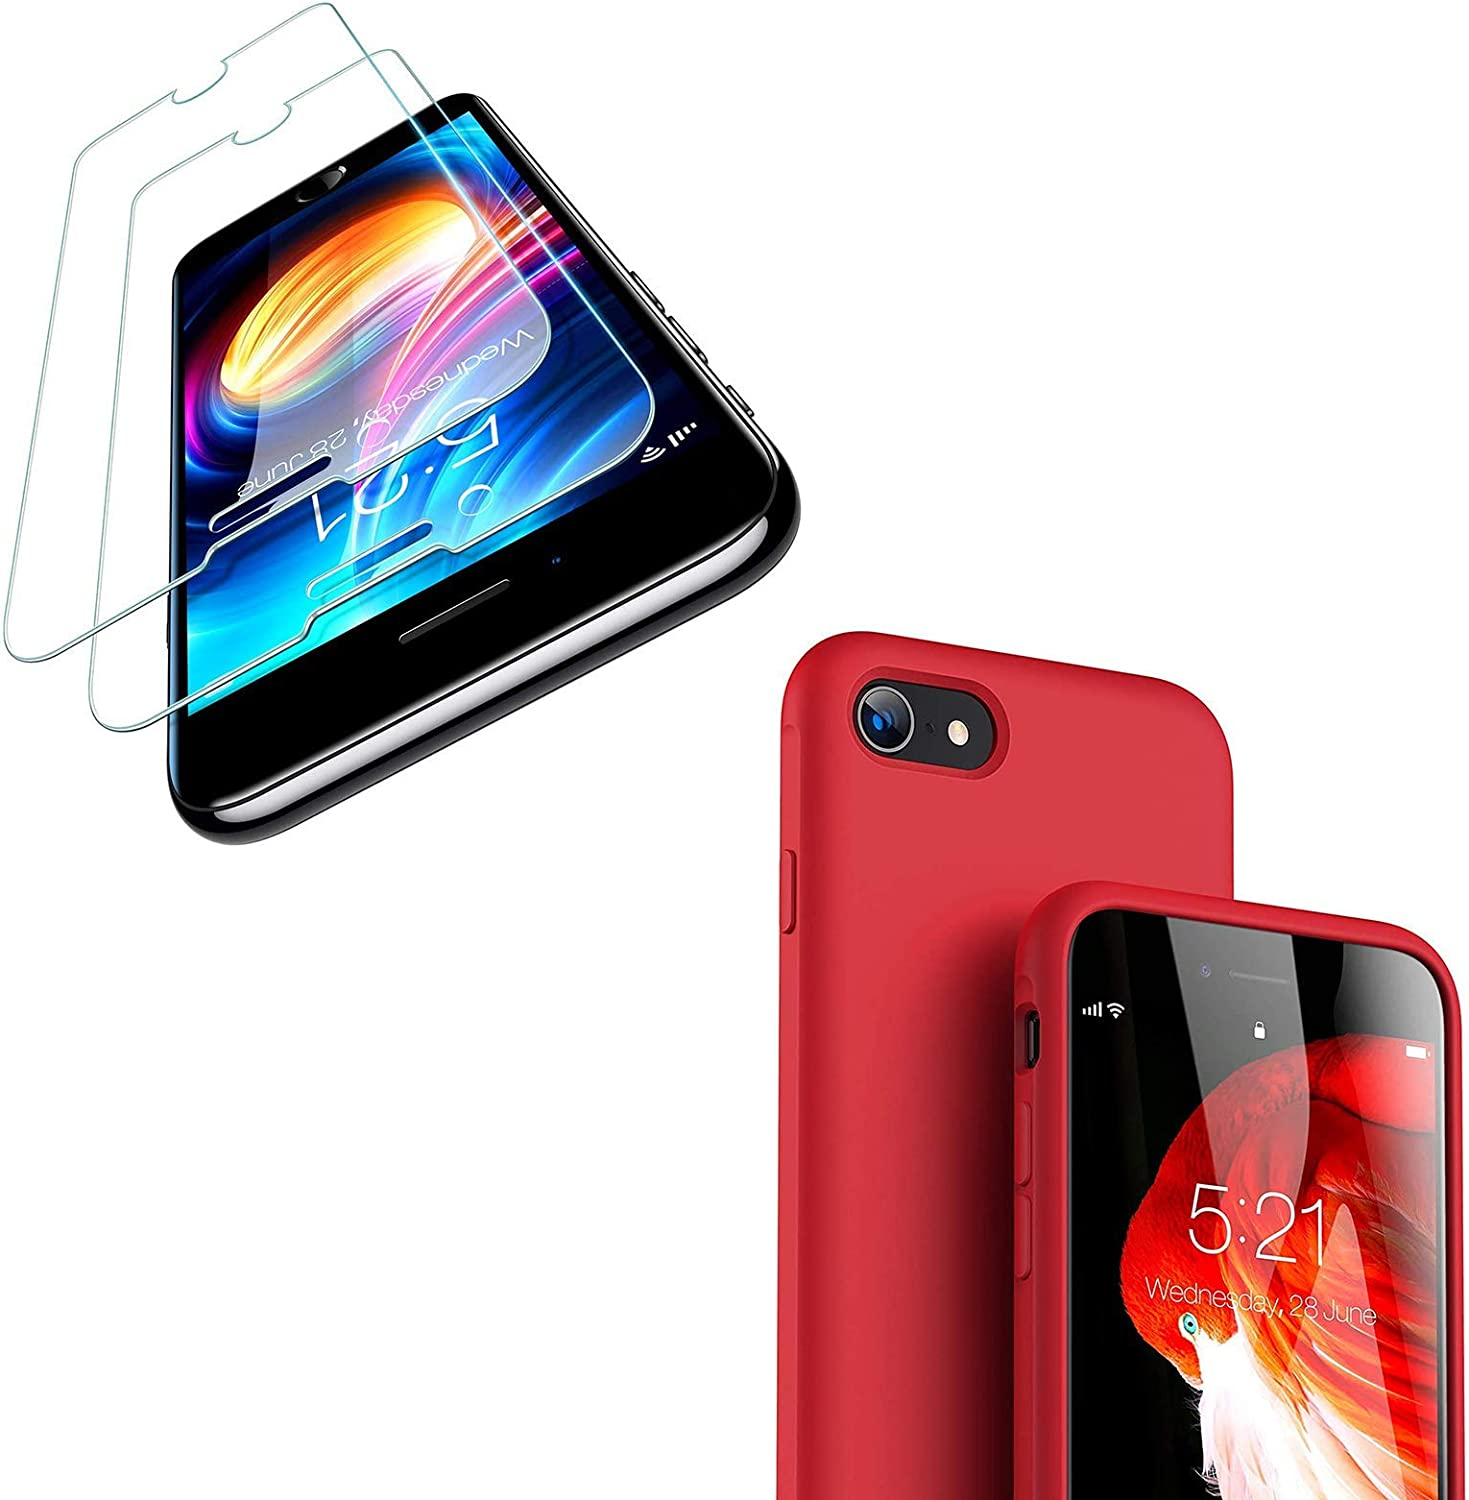 TORRAS Liquid Silicone Designed for iPhone SE 2020 Case Ruby Red & iPhone SE 2020 Screen Protector